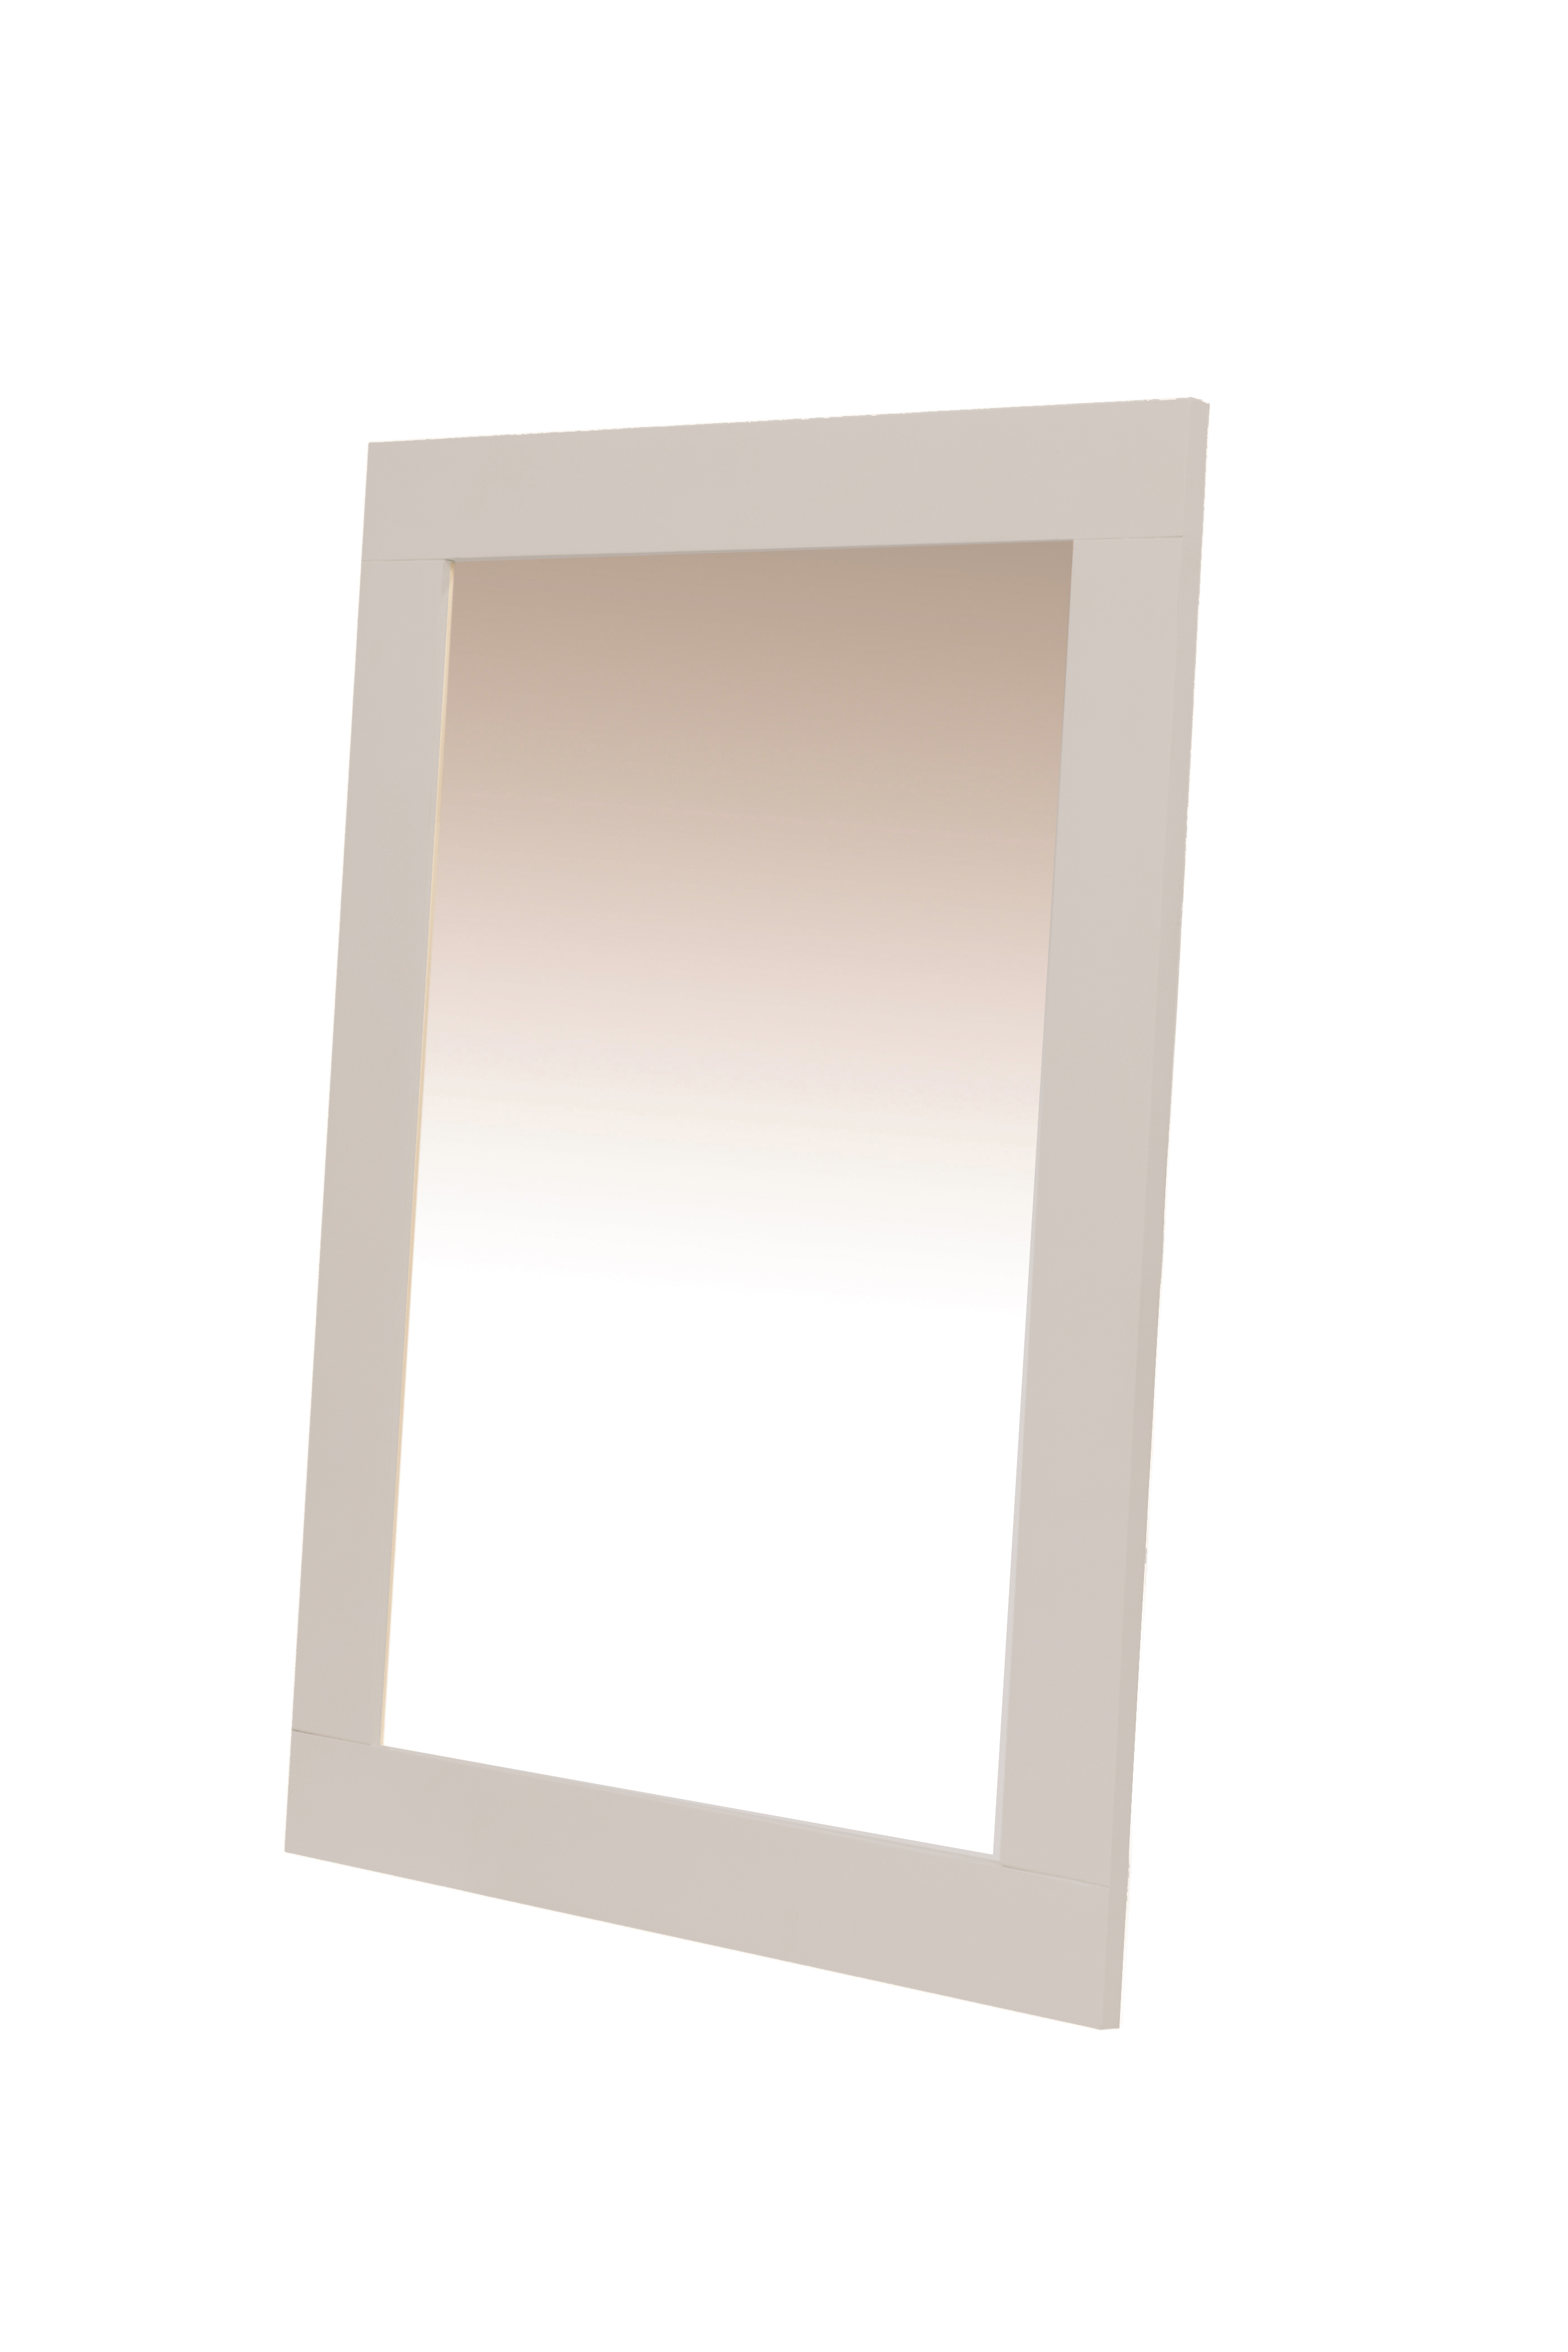 Most Recently Released Dunworley Wall Mirror For Adjustable Wall Mirrors (Gallery 12 of 20)